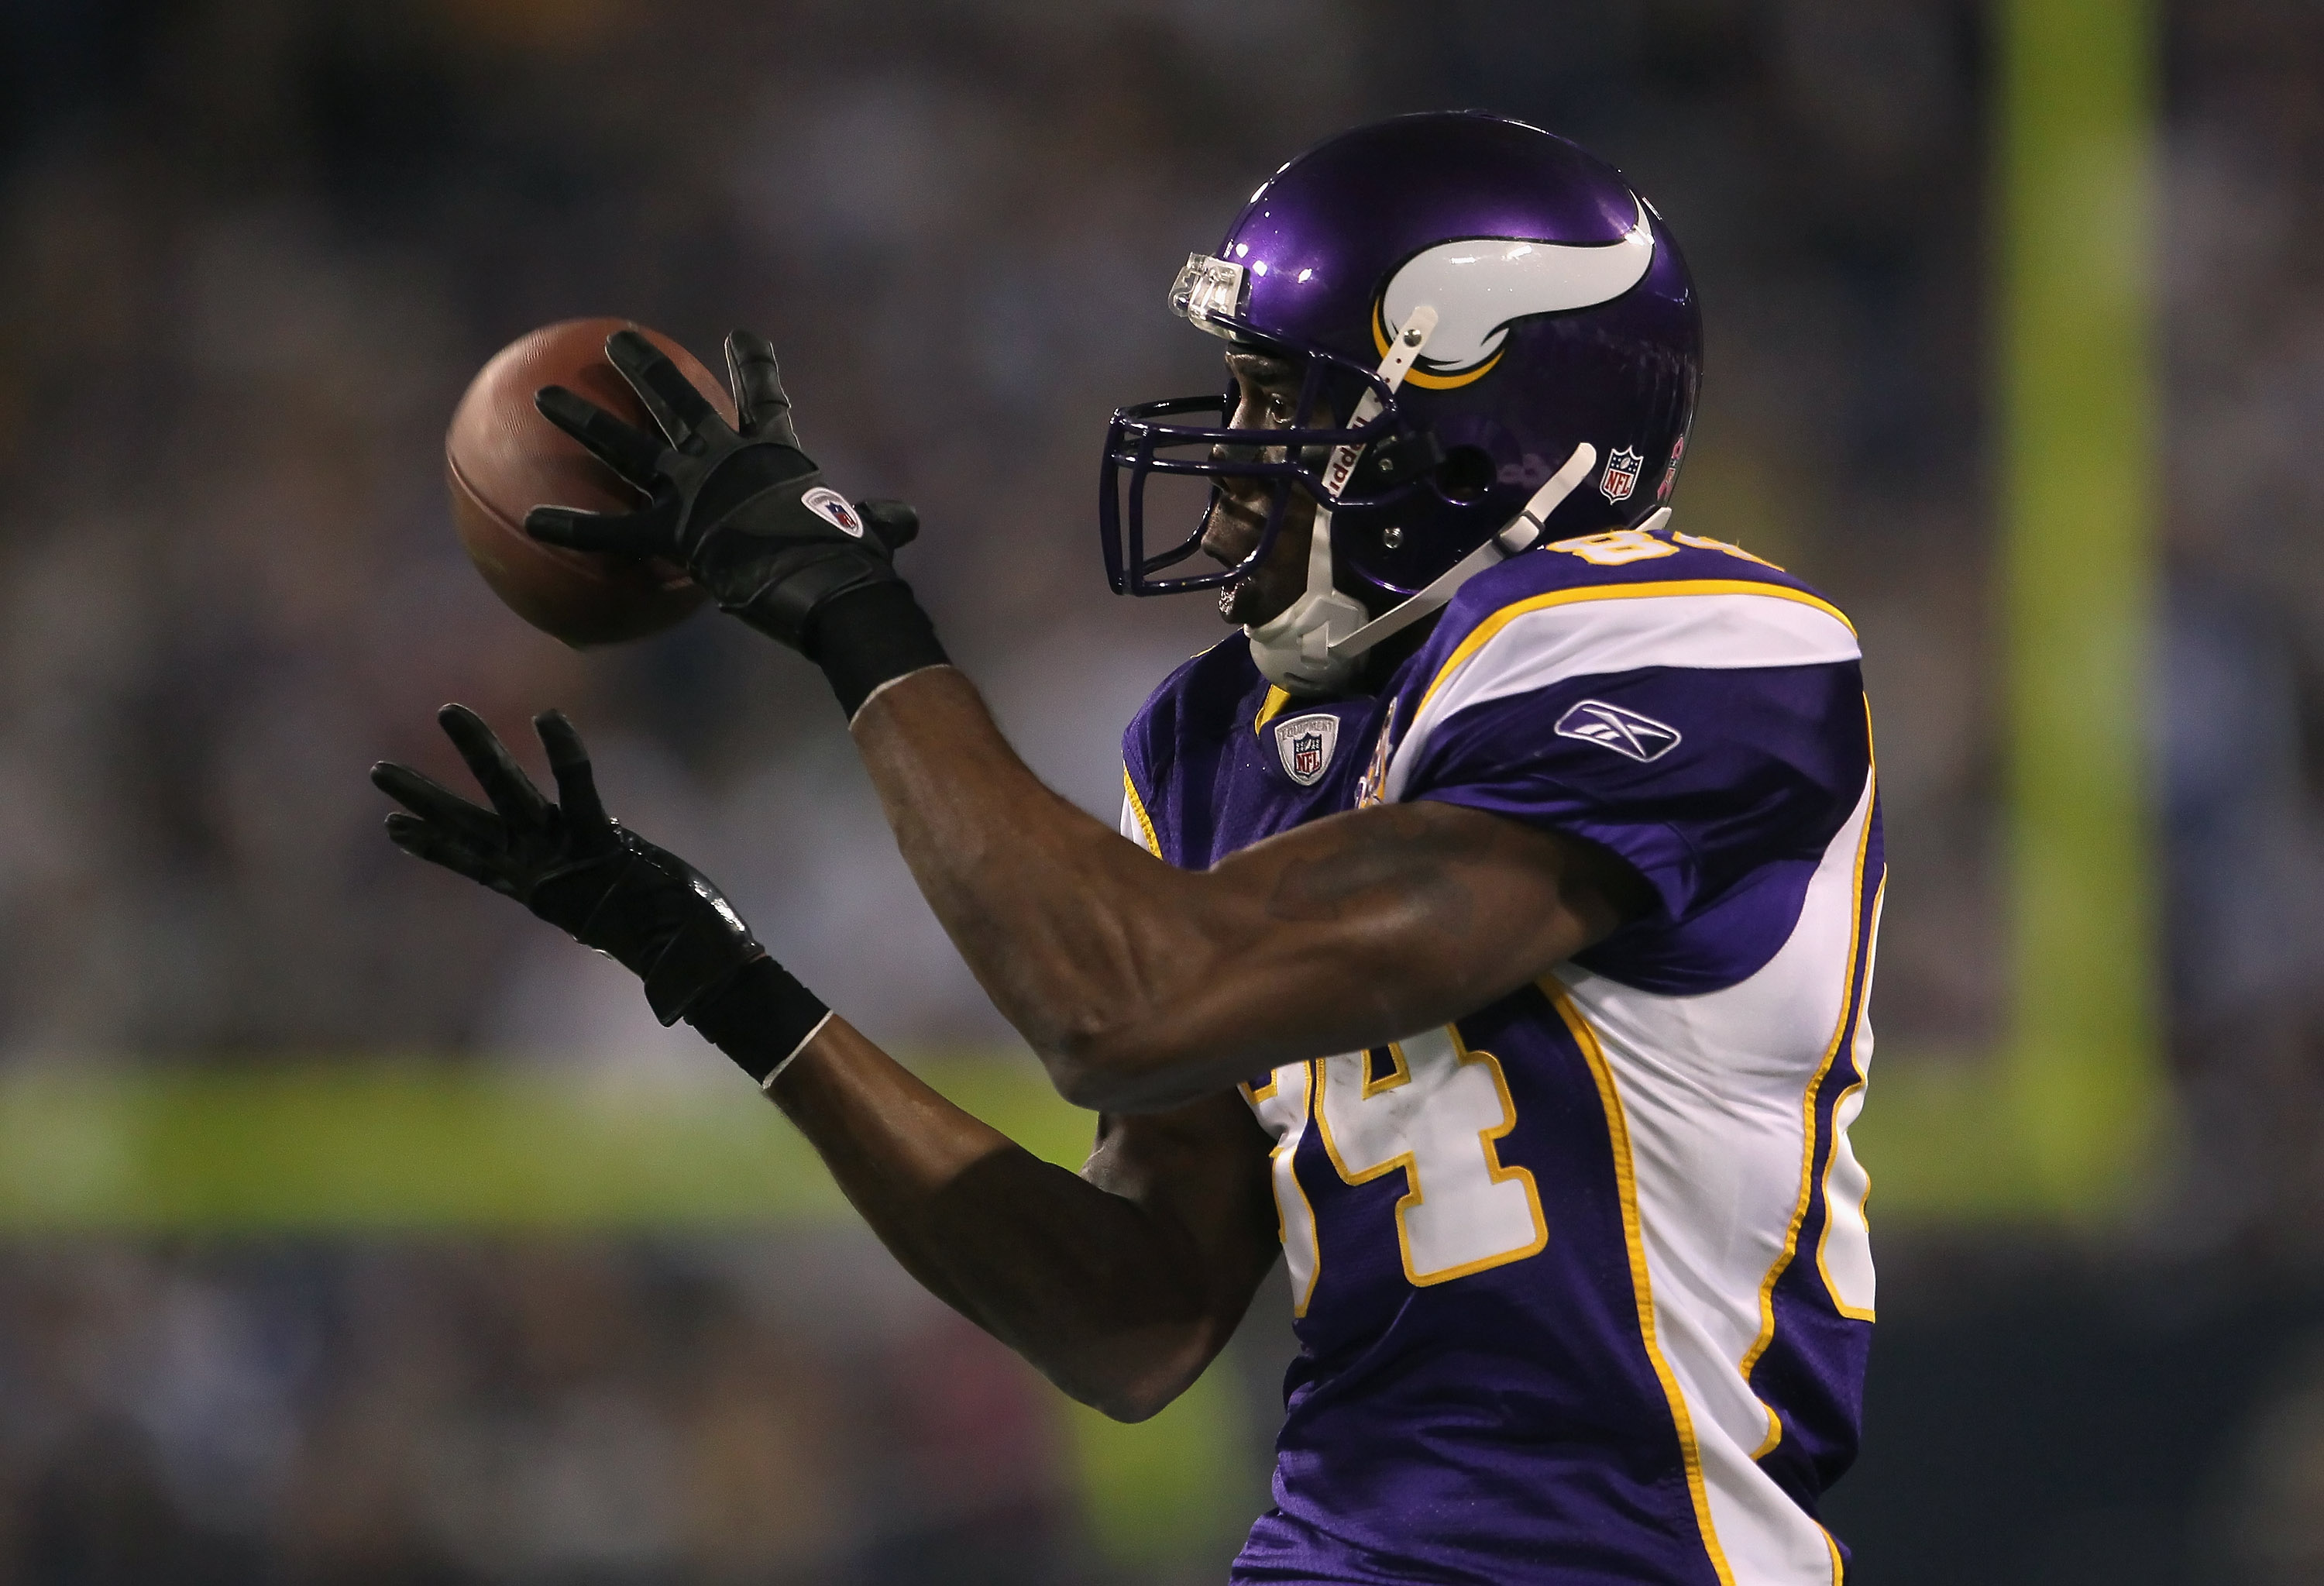 MINNEAPOLIS - OCTOBER 17:  Wide receiver Randy Moss #84 of the Minnesota Vikings catches a pass during the third quarter at Mall of America Field on October 17, 2010 in Minneapolis, Minnesota. The Vikings defeated the Cowboys 24-21.  (Photo by Jeff Gross/